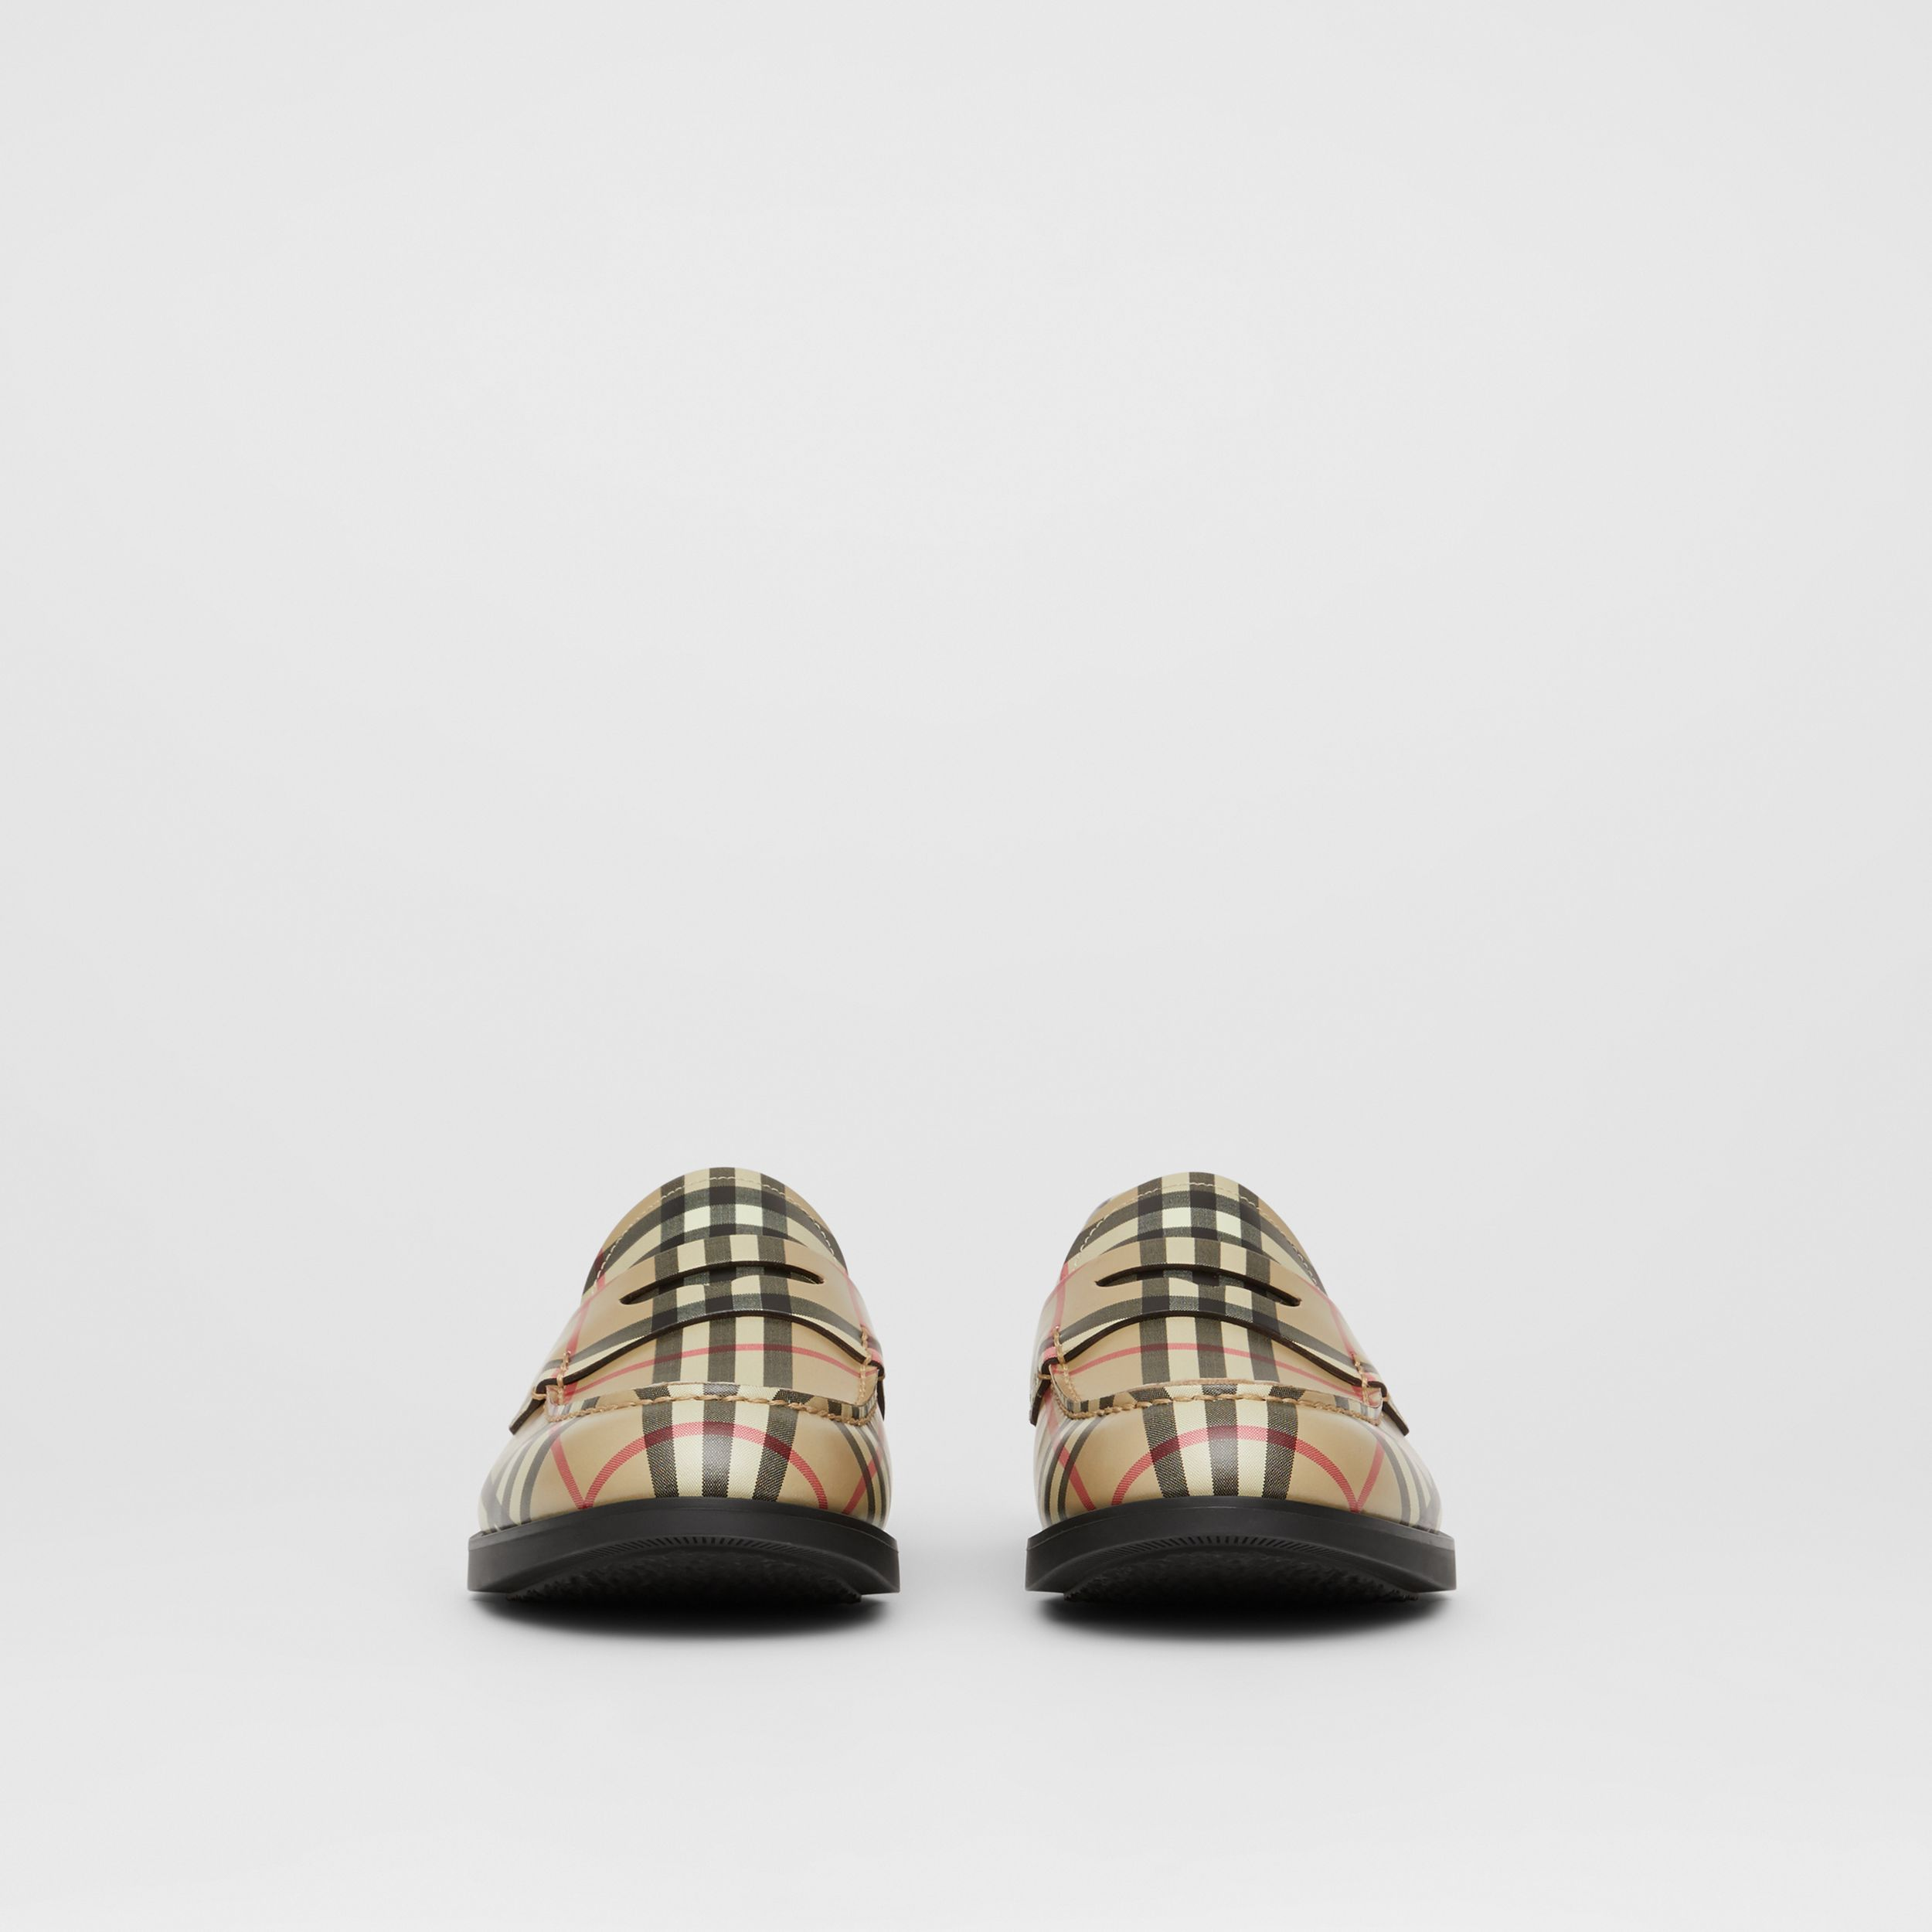 D-ring Detail Vintage Check Leather Loafers in Archive Beige - Men | Burberry United States - 3